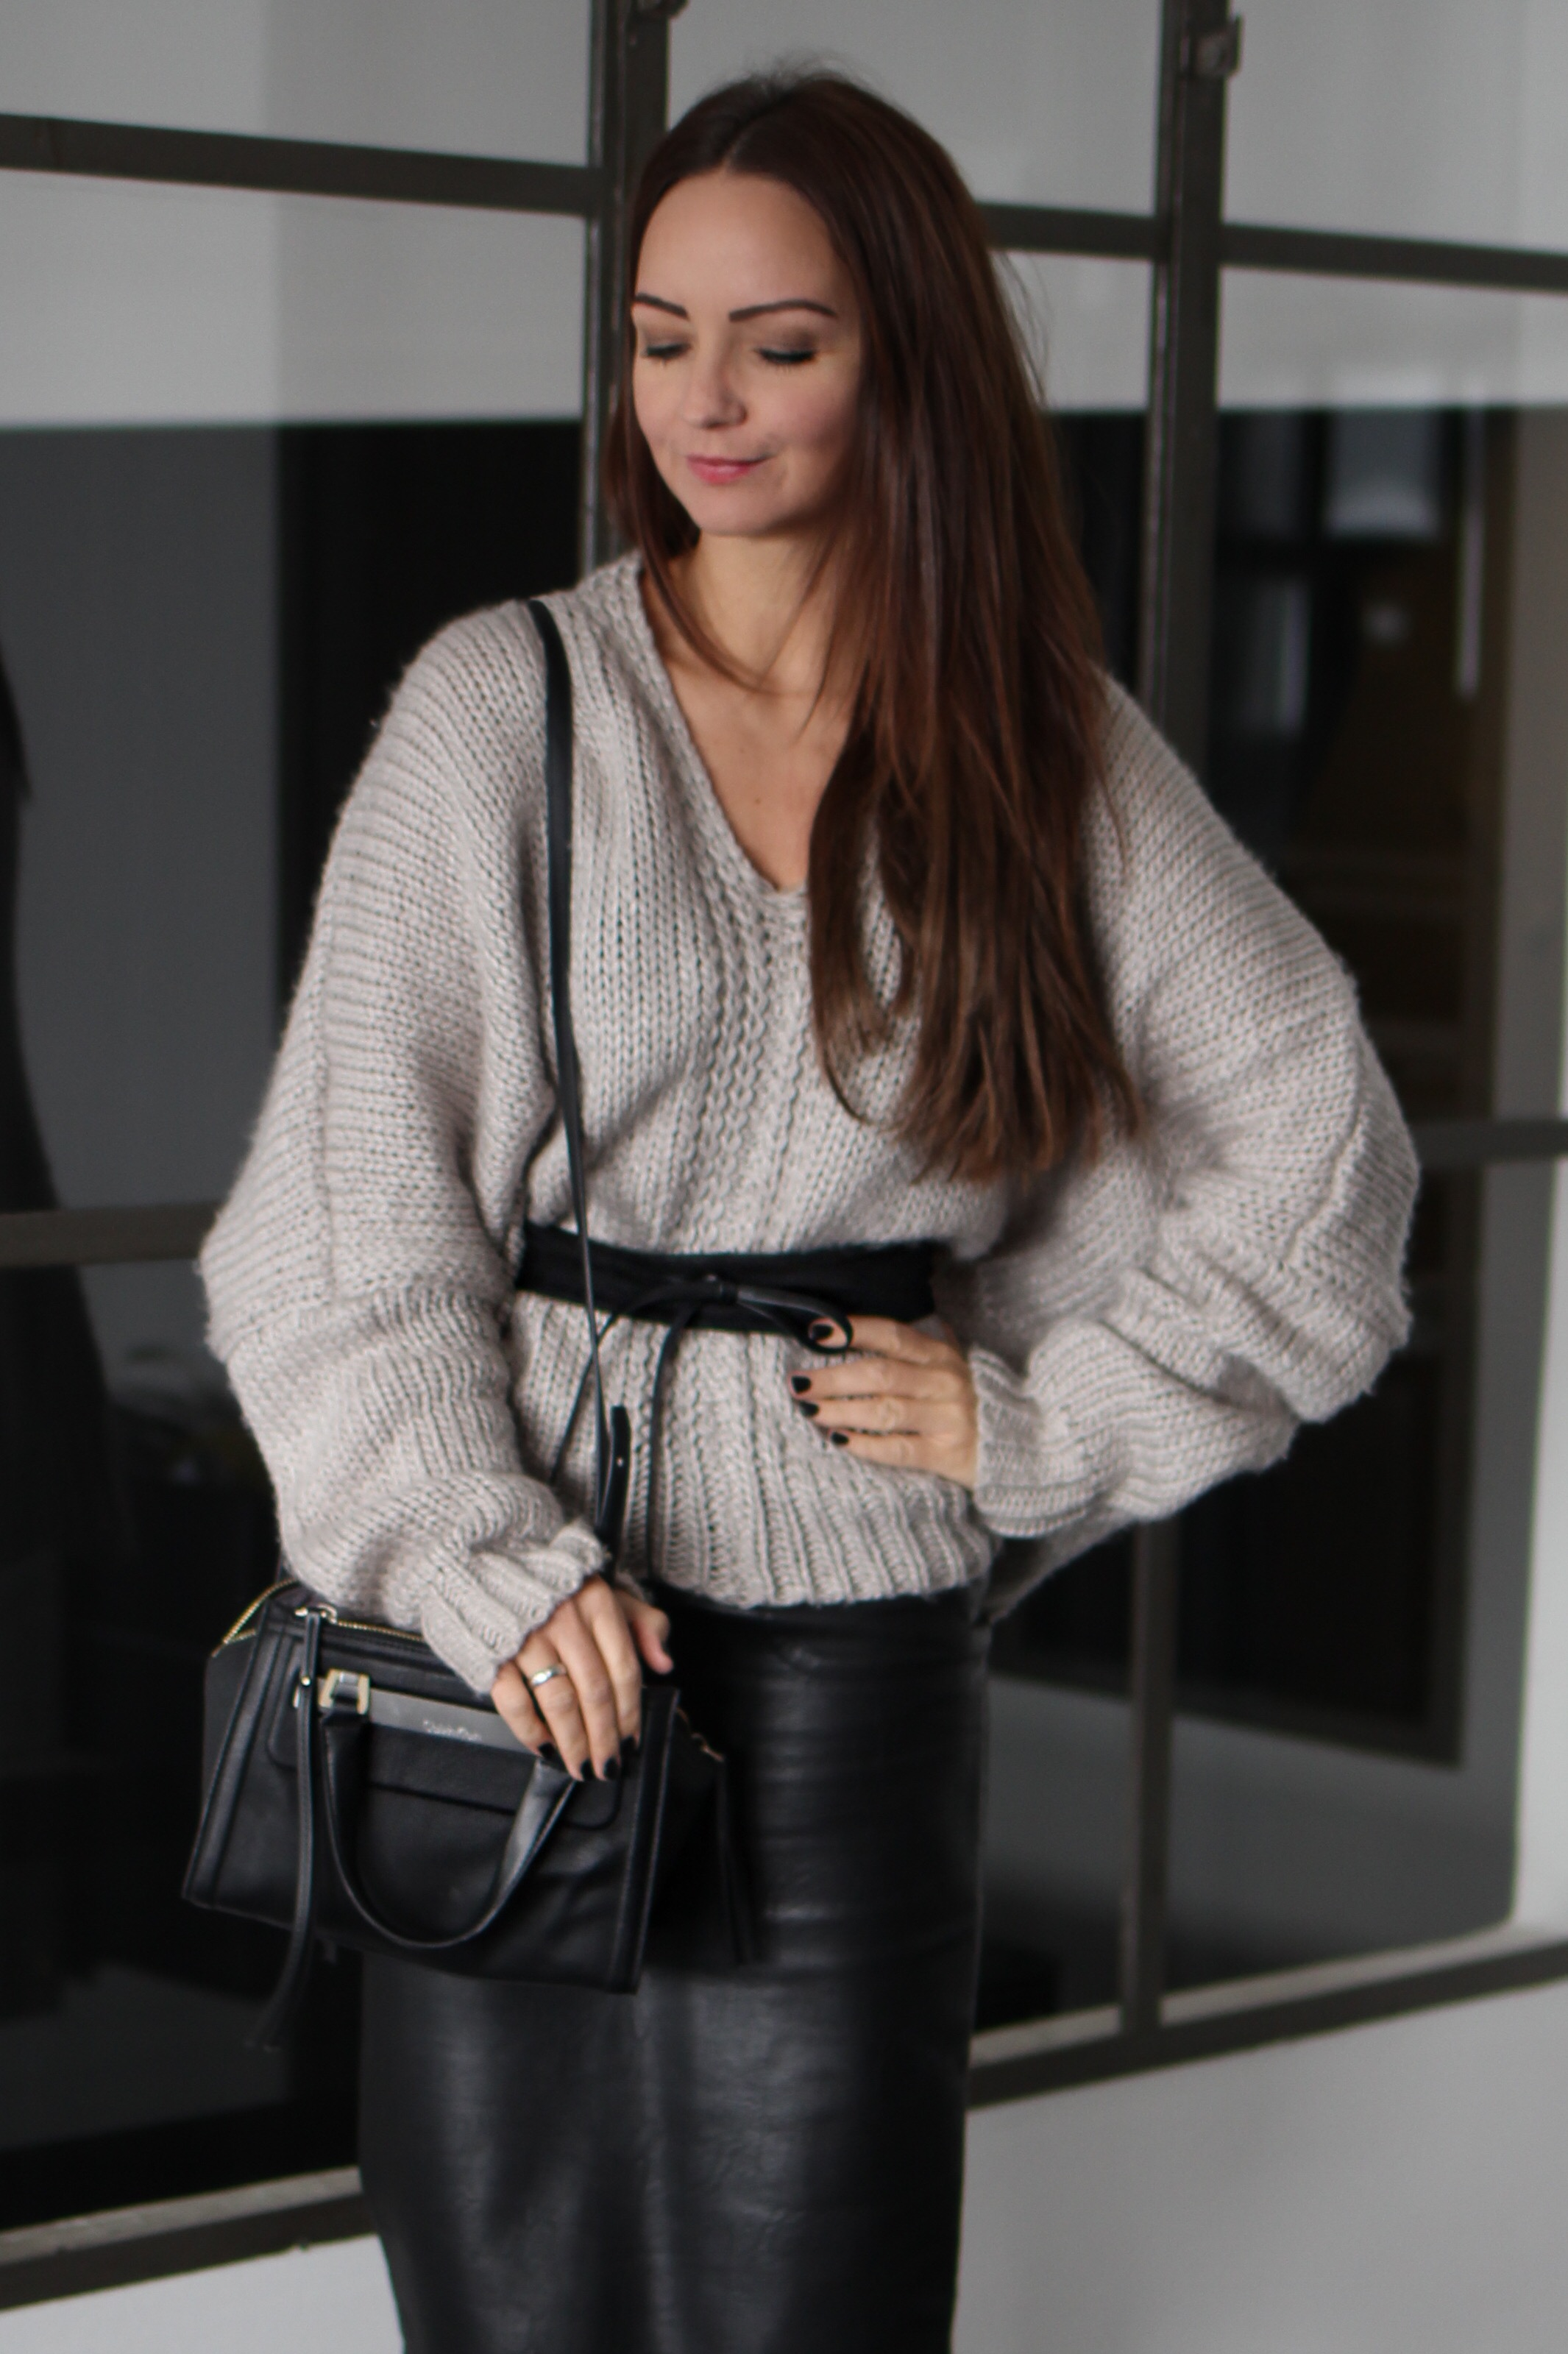 Fashioncircuz by Jenny img_4567 OUTFIT | LEDERROCK TRIFFT AUF COZY PULLOVER